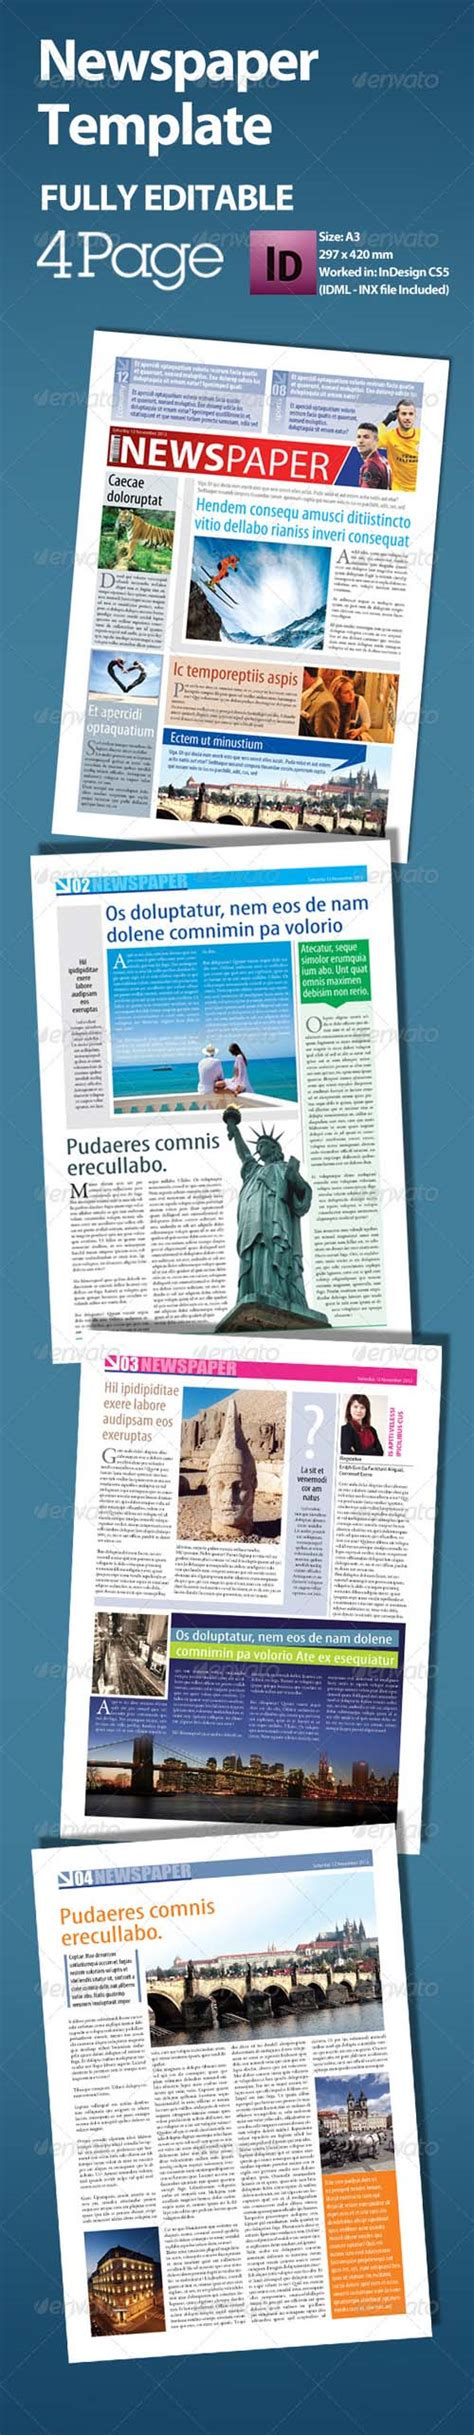 photoshop a3 layout graphicriver newspaper template a3 format 4 page avaxhome